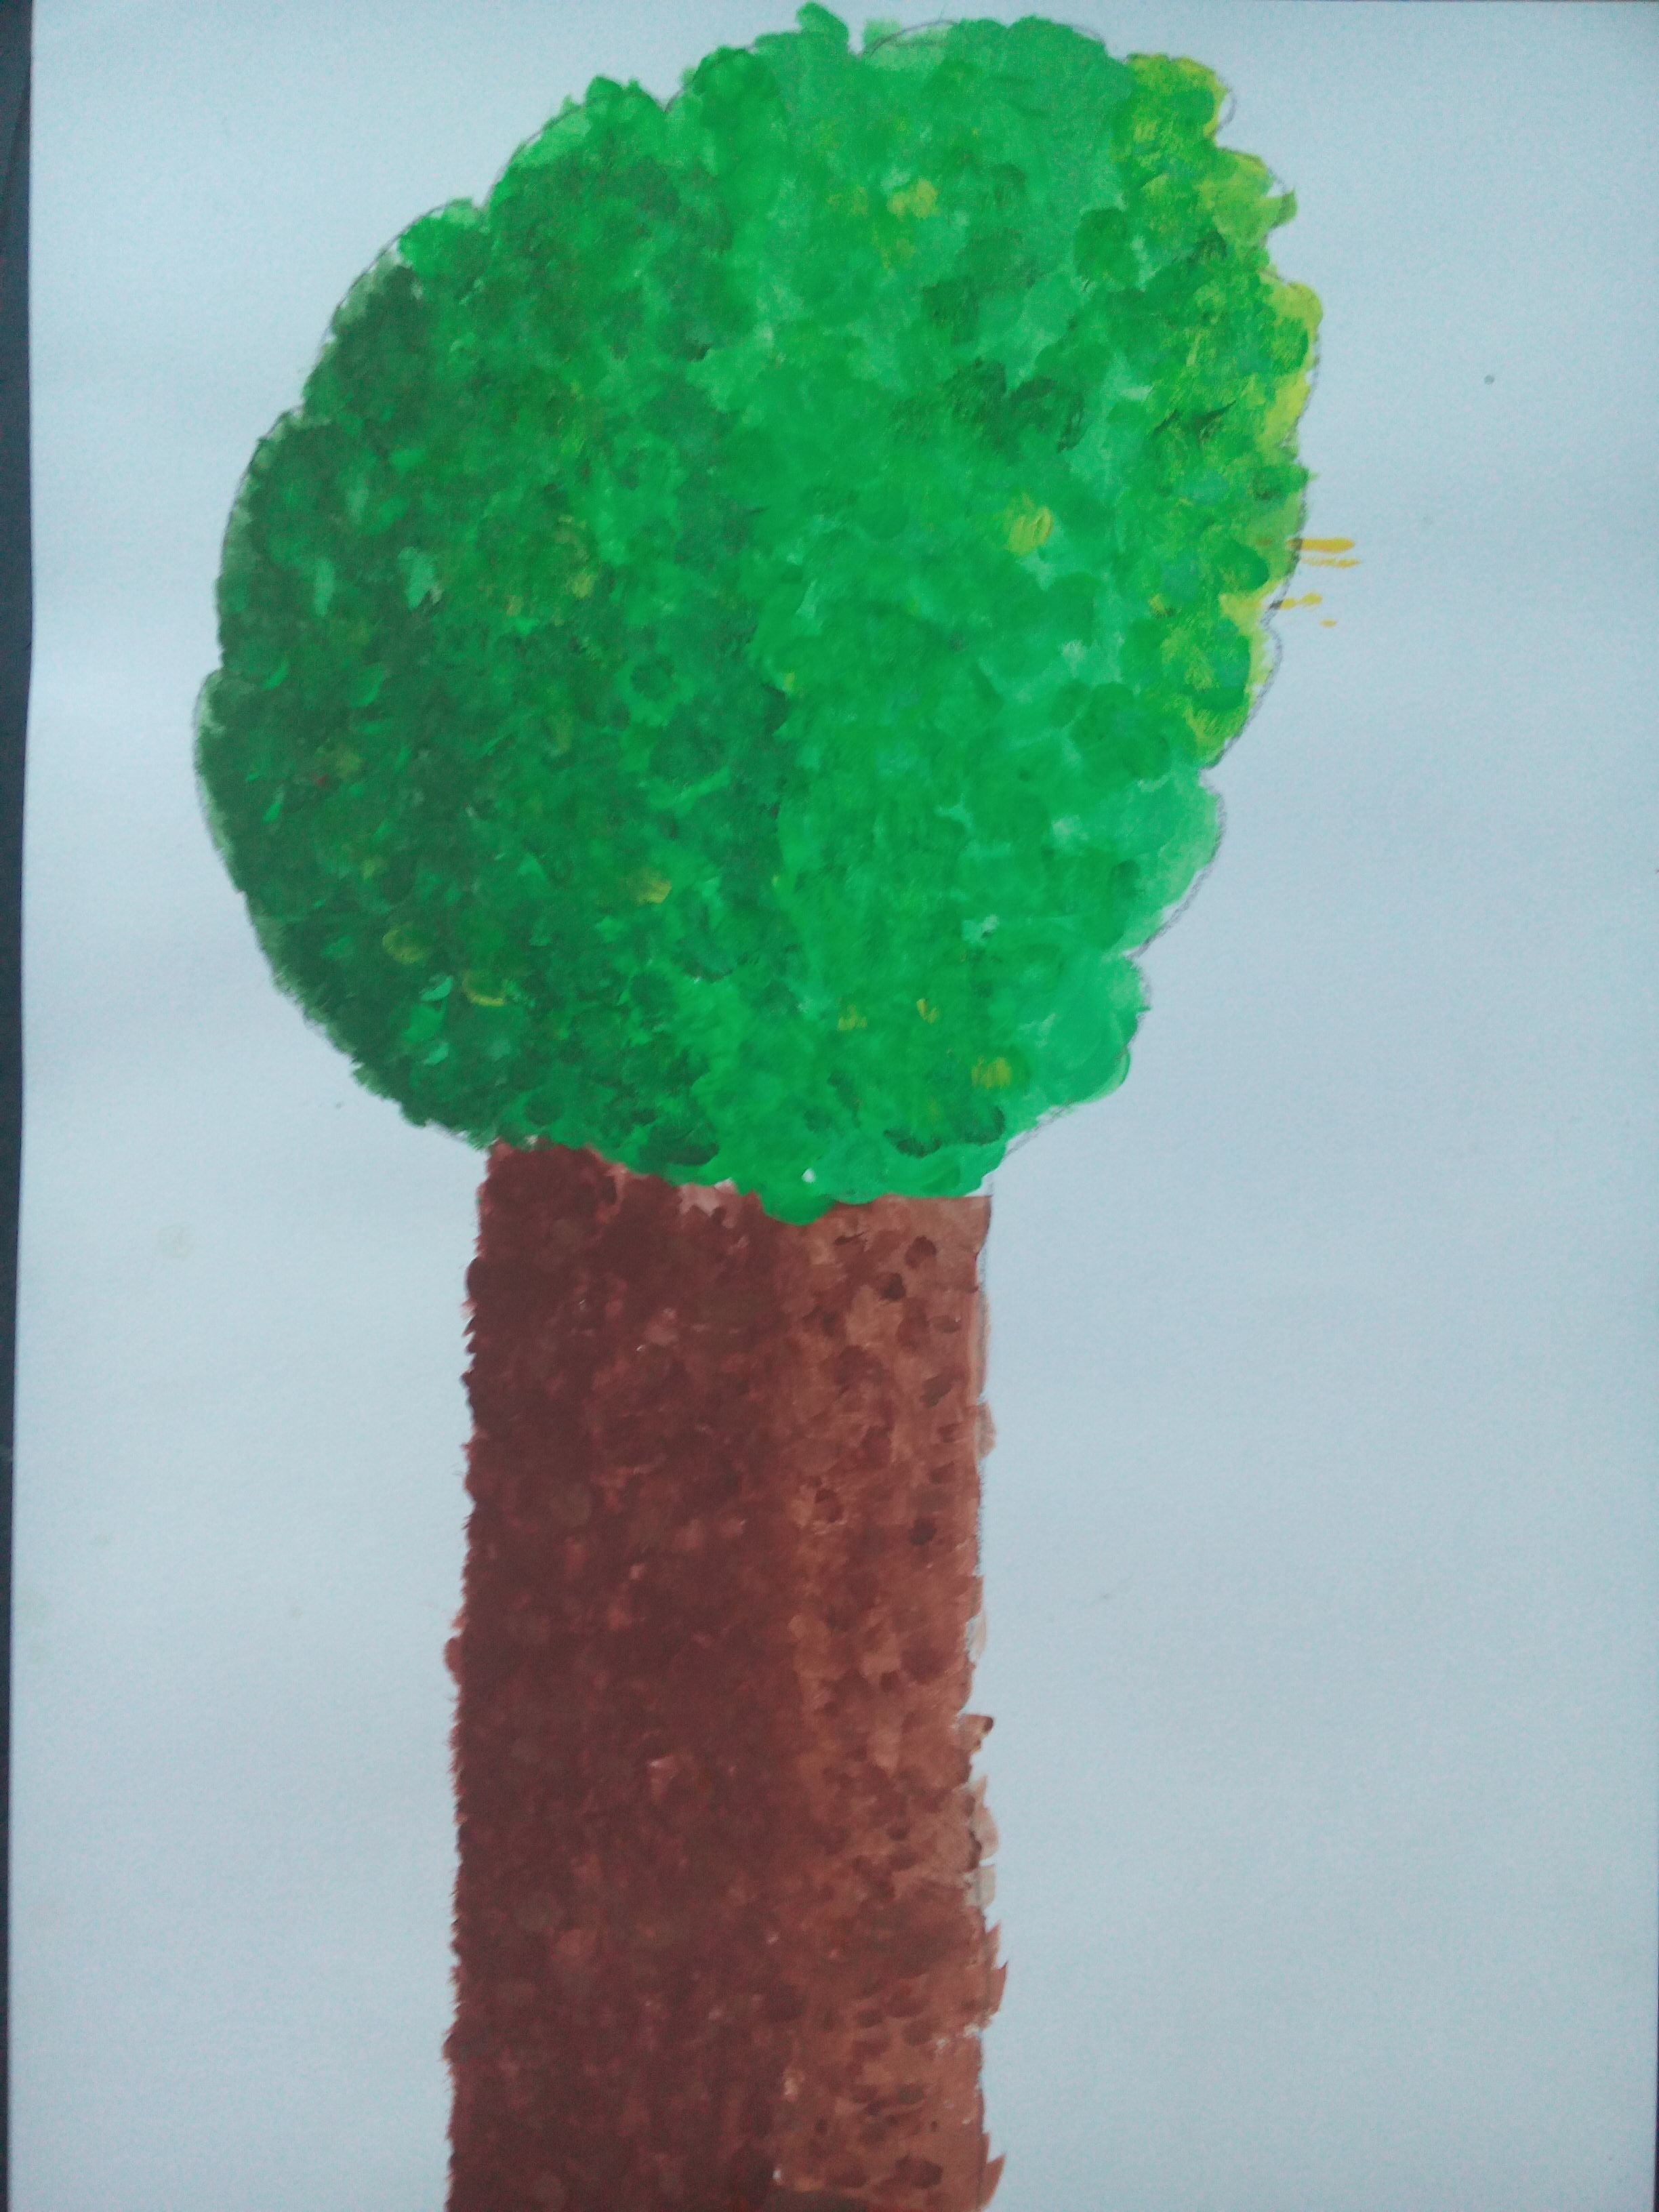 This is a painting I made myself. It is a tree colors: green, brown